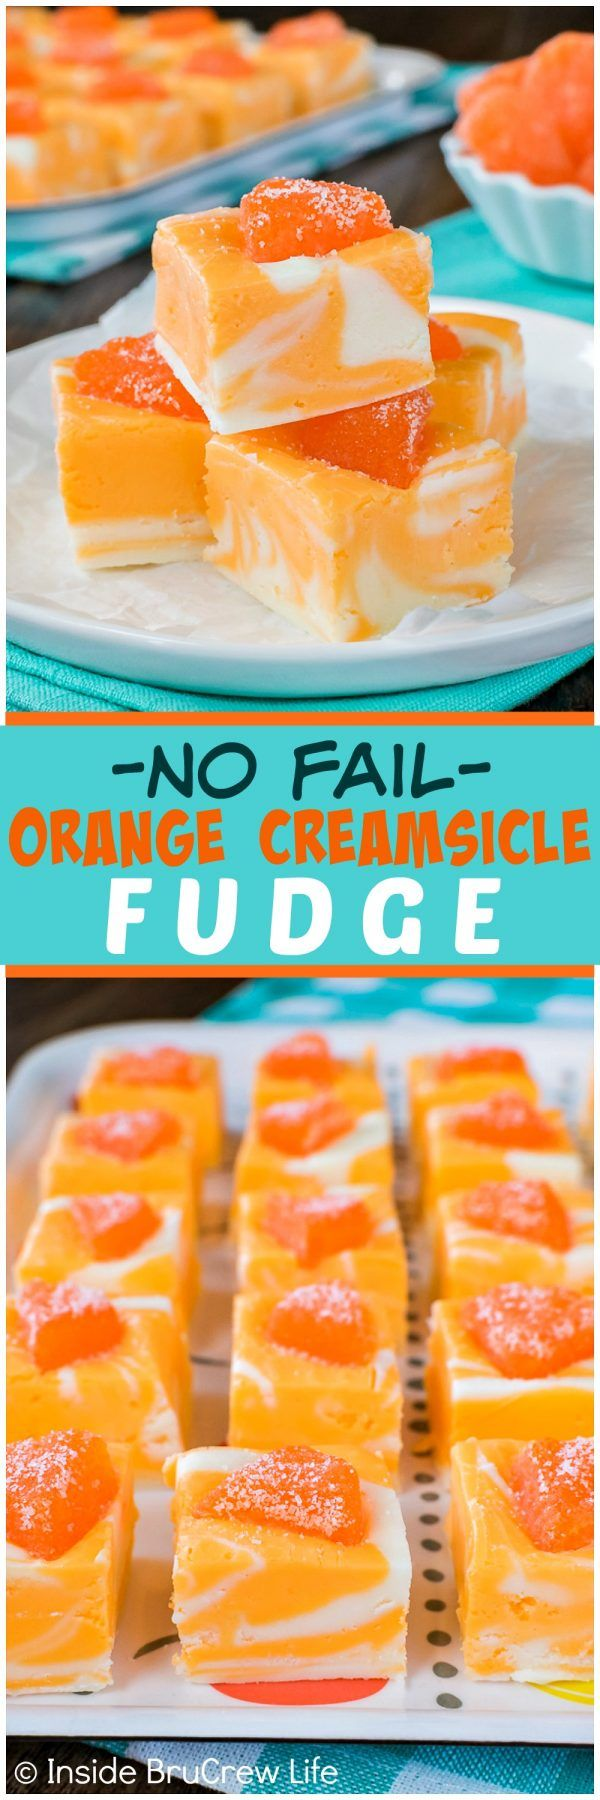 No Fail Orange Creamsicle Fudge